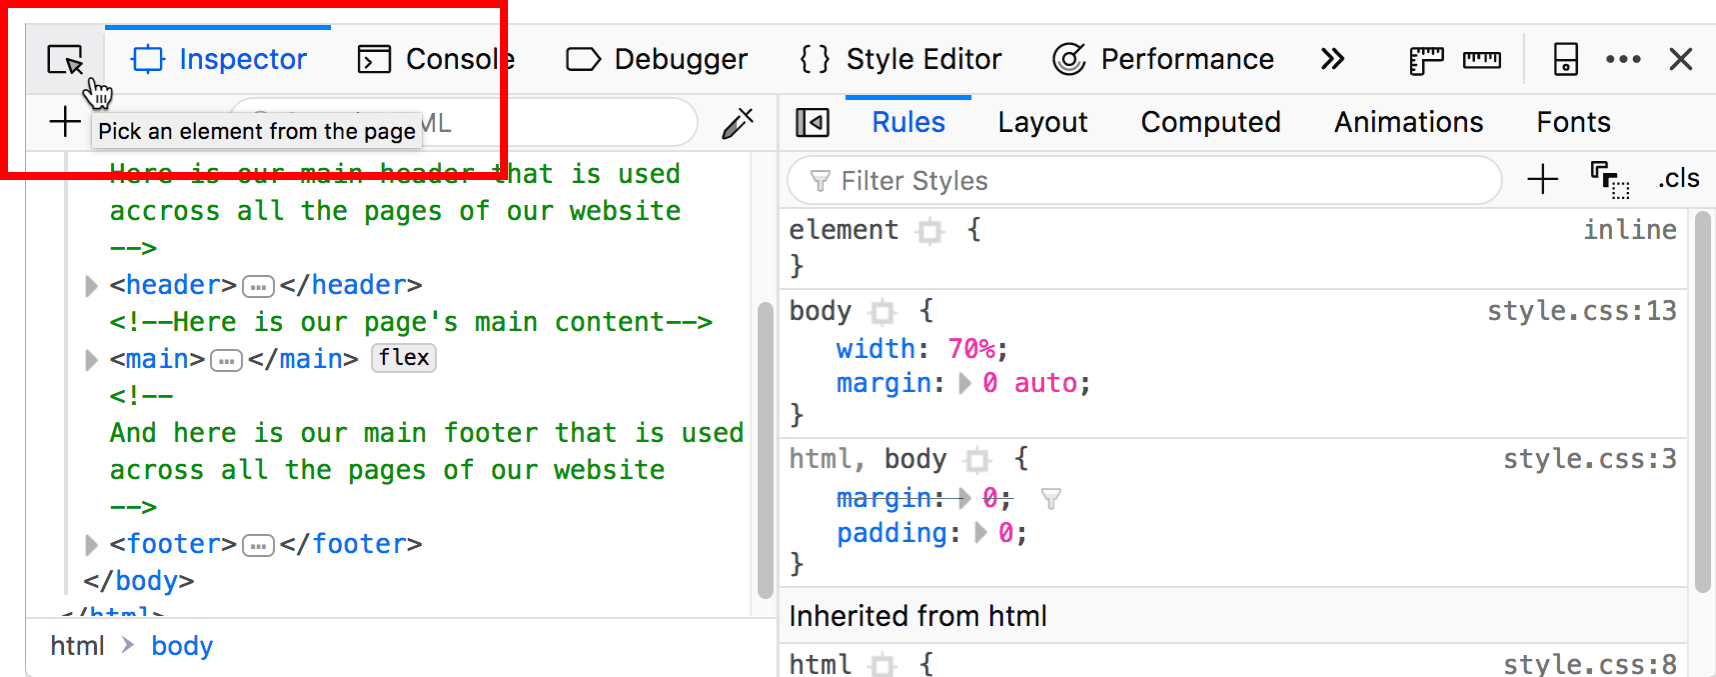 highlighted dom inspector picker button, with a tooltip saying Pick an element from the page